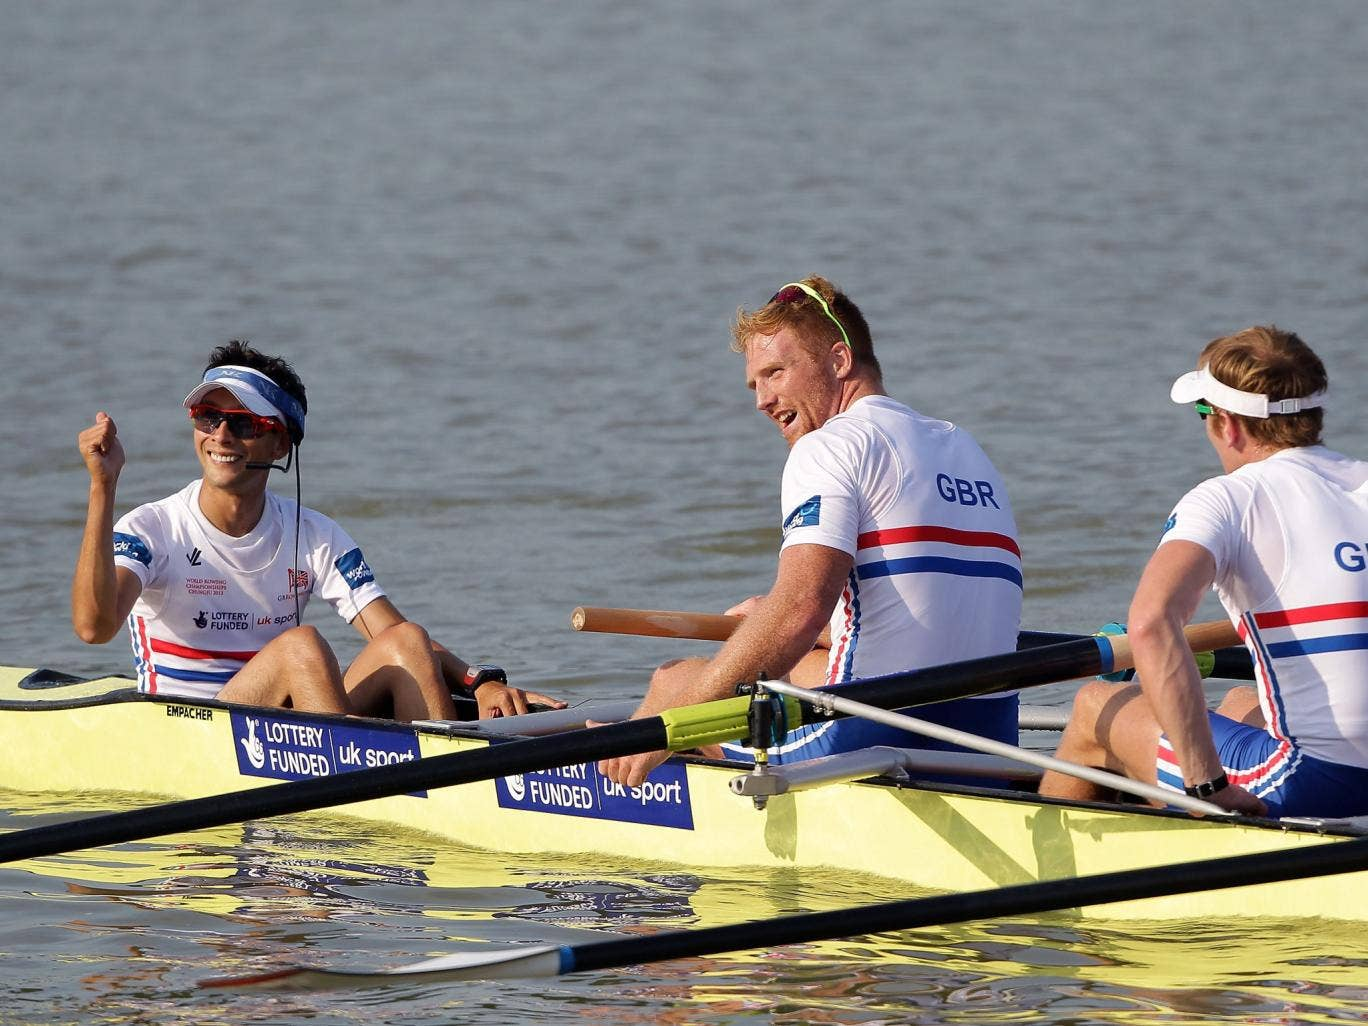 Great Britain ended a successful World Championships in Chengdu by taking their first-ever gold medal in the men's eight event